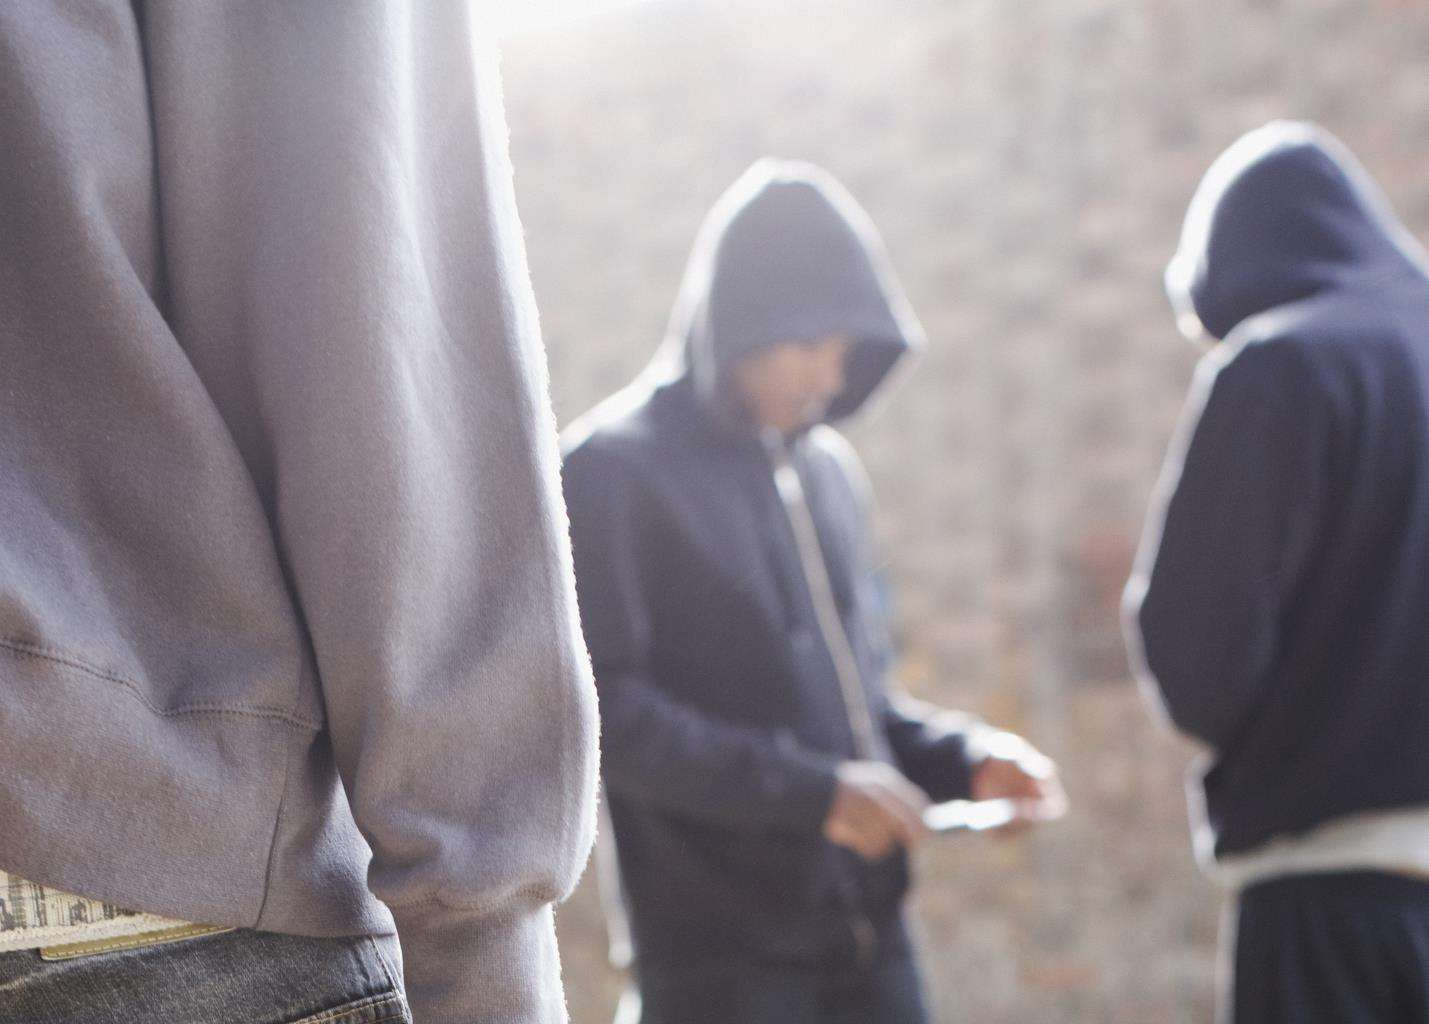 Children are being lured into drug gangs (3513030)